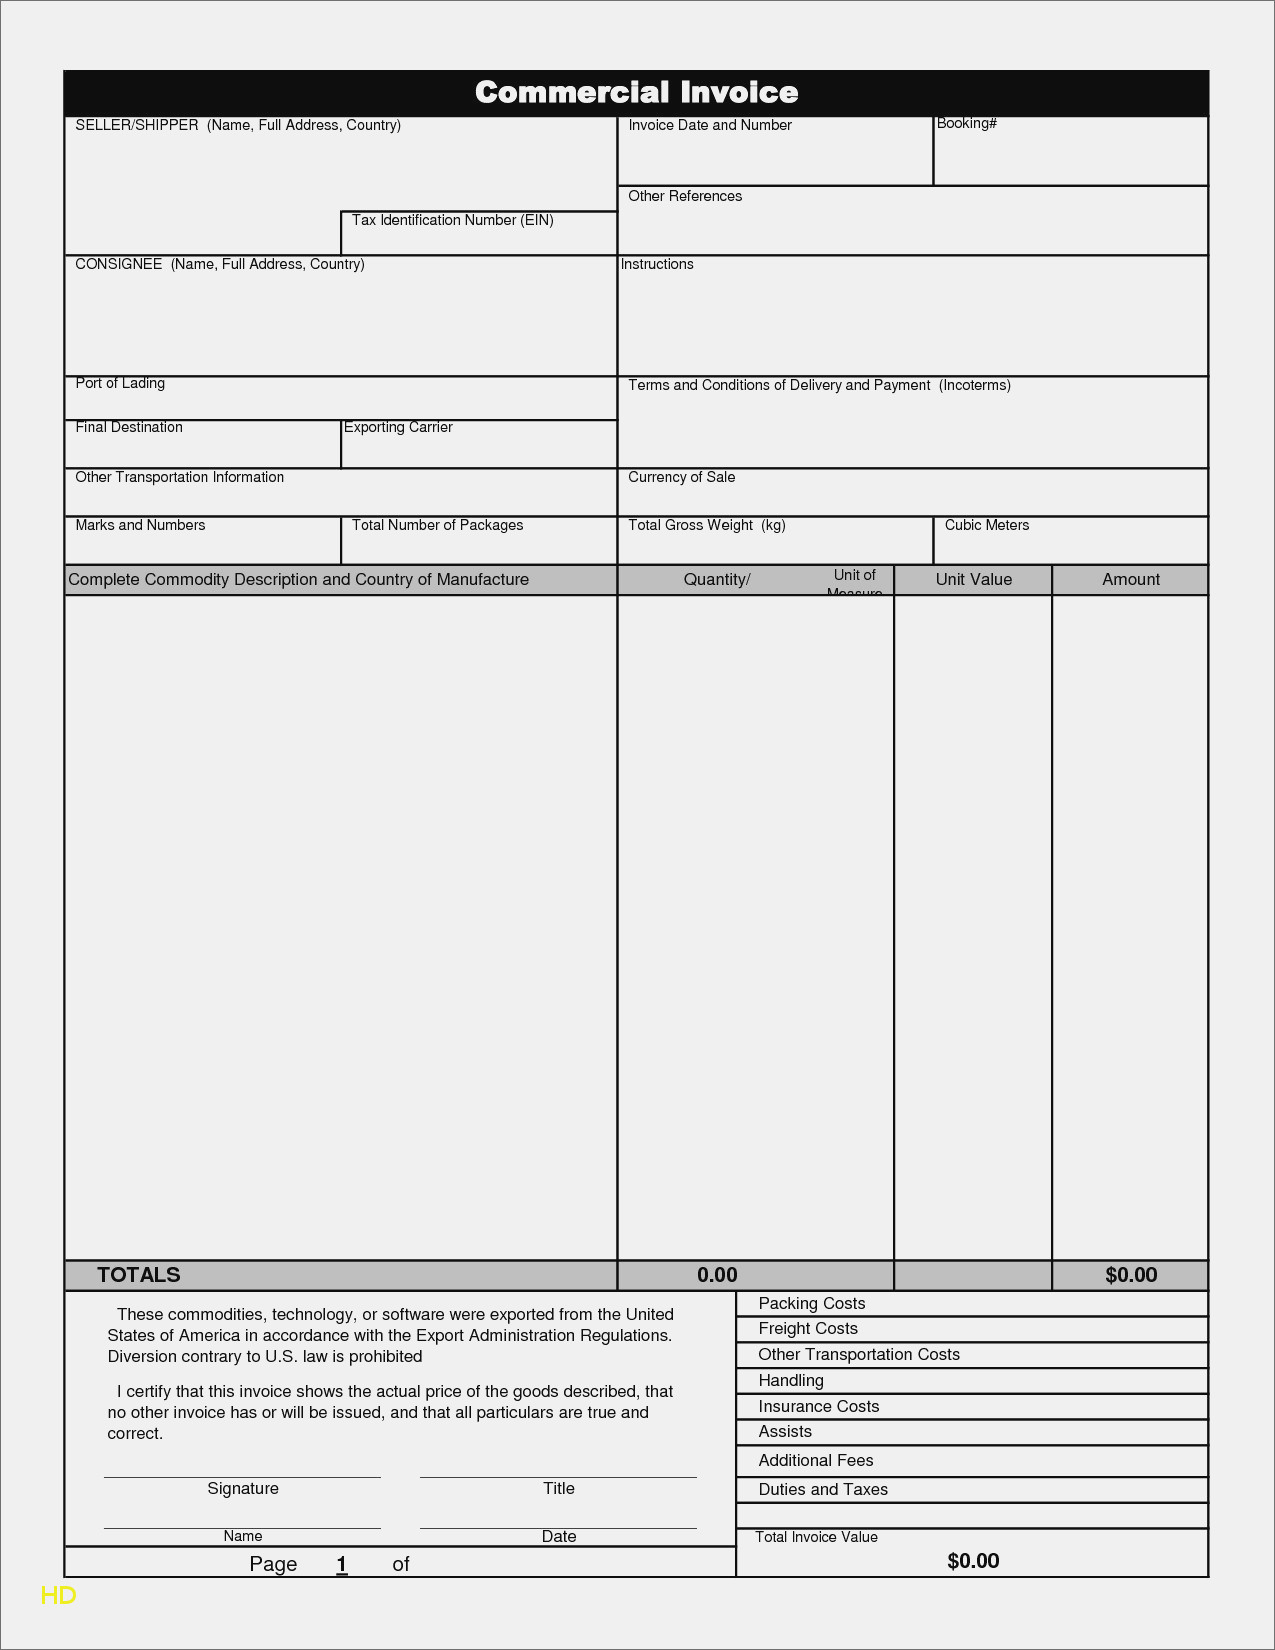 Commercial Invoice Template Excel Free Download Free Invoice And Invoice Template Excel Free Download